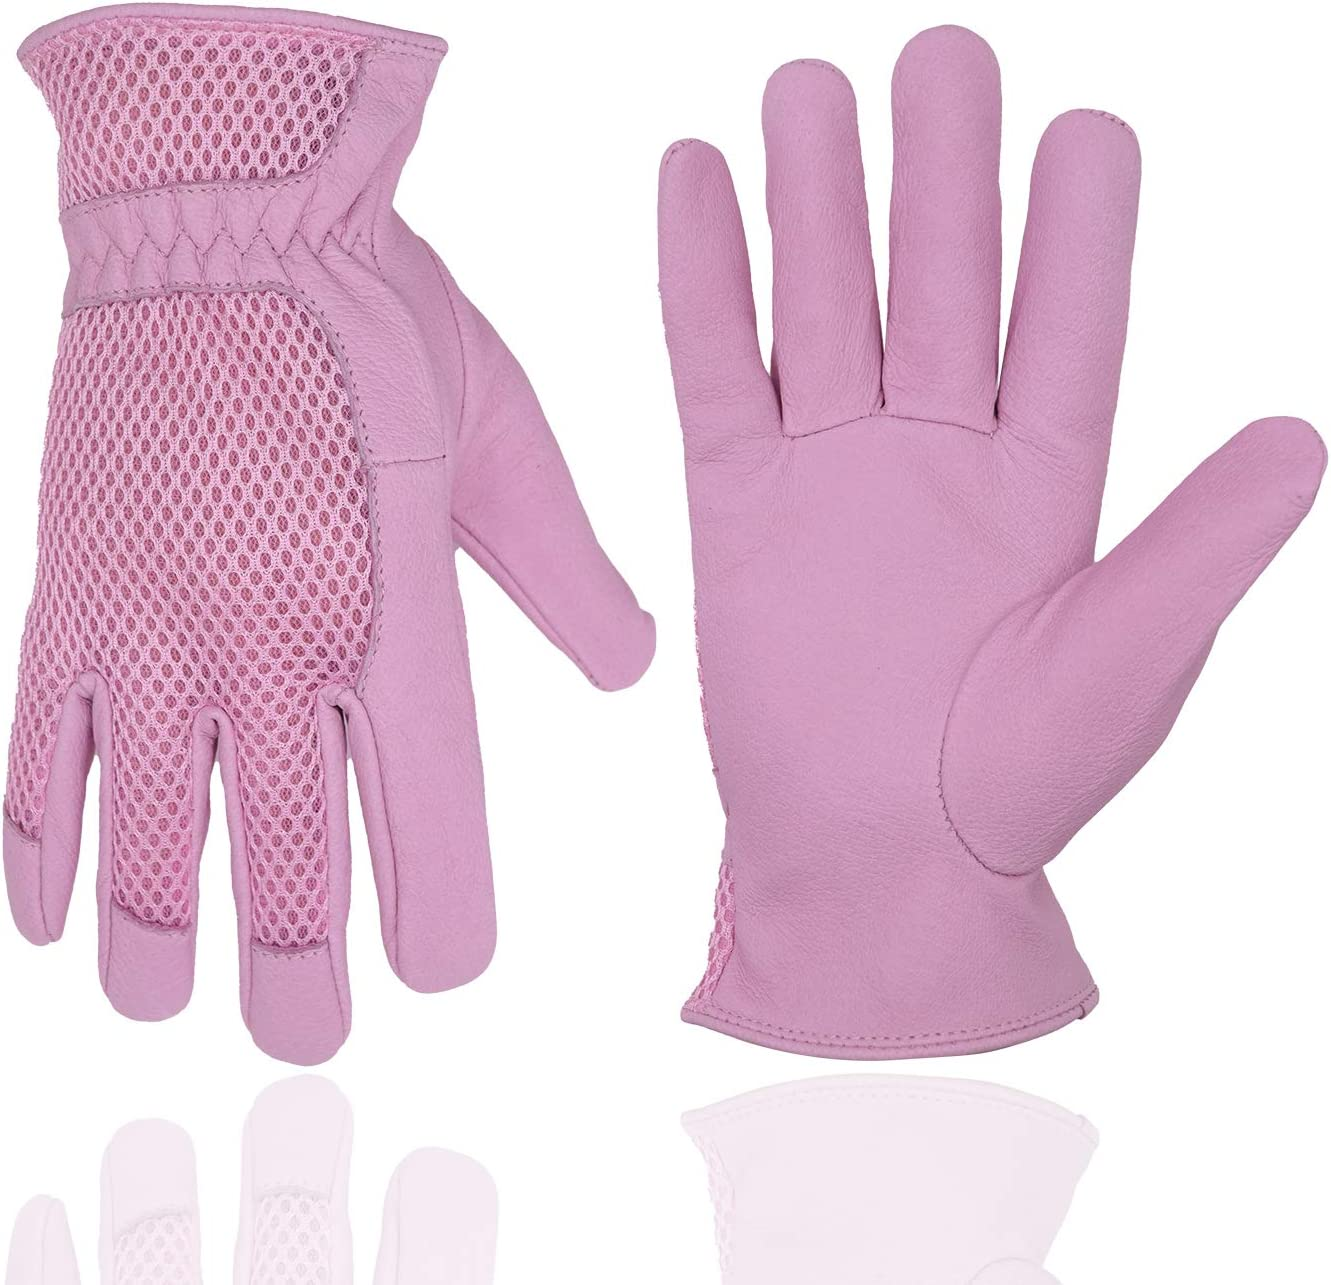 Pigskin Leather women Gardening Gloves,Stretchable Tough Working Glove,3D Mesh Comfort Fit,Comfort and Breathable Design for rose garden (Small, Pink)